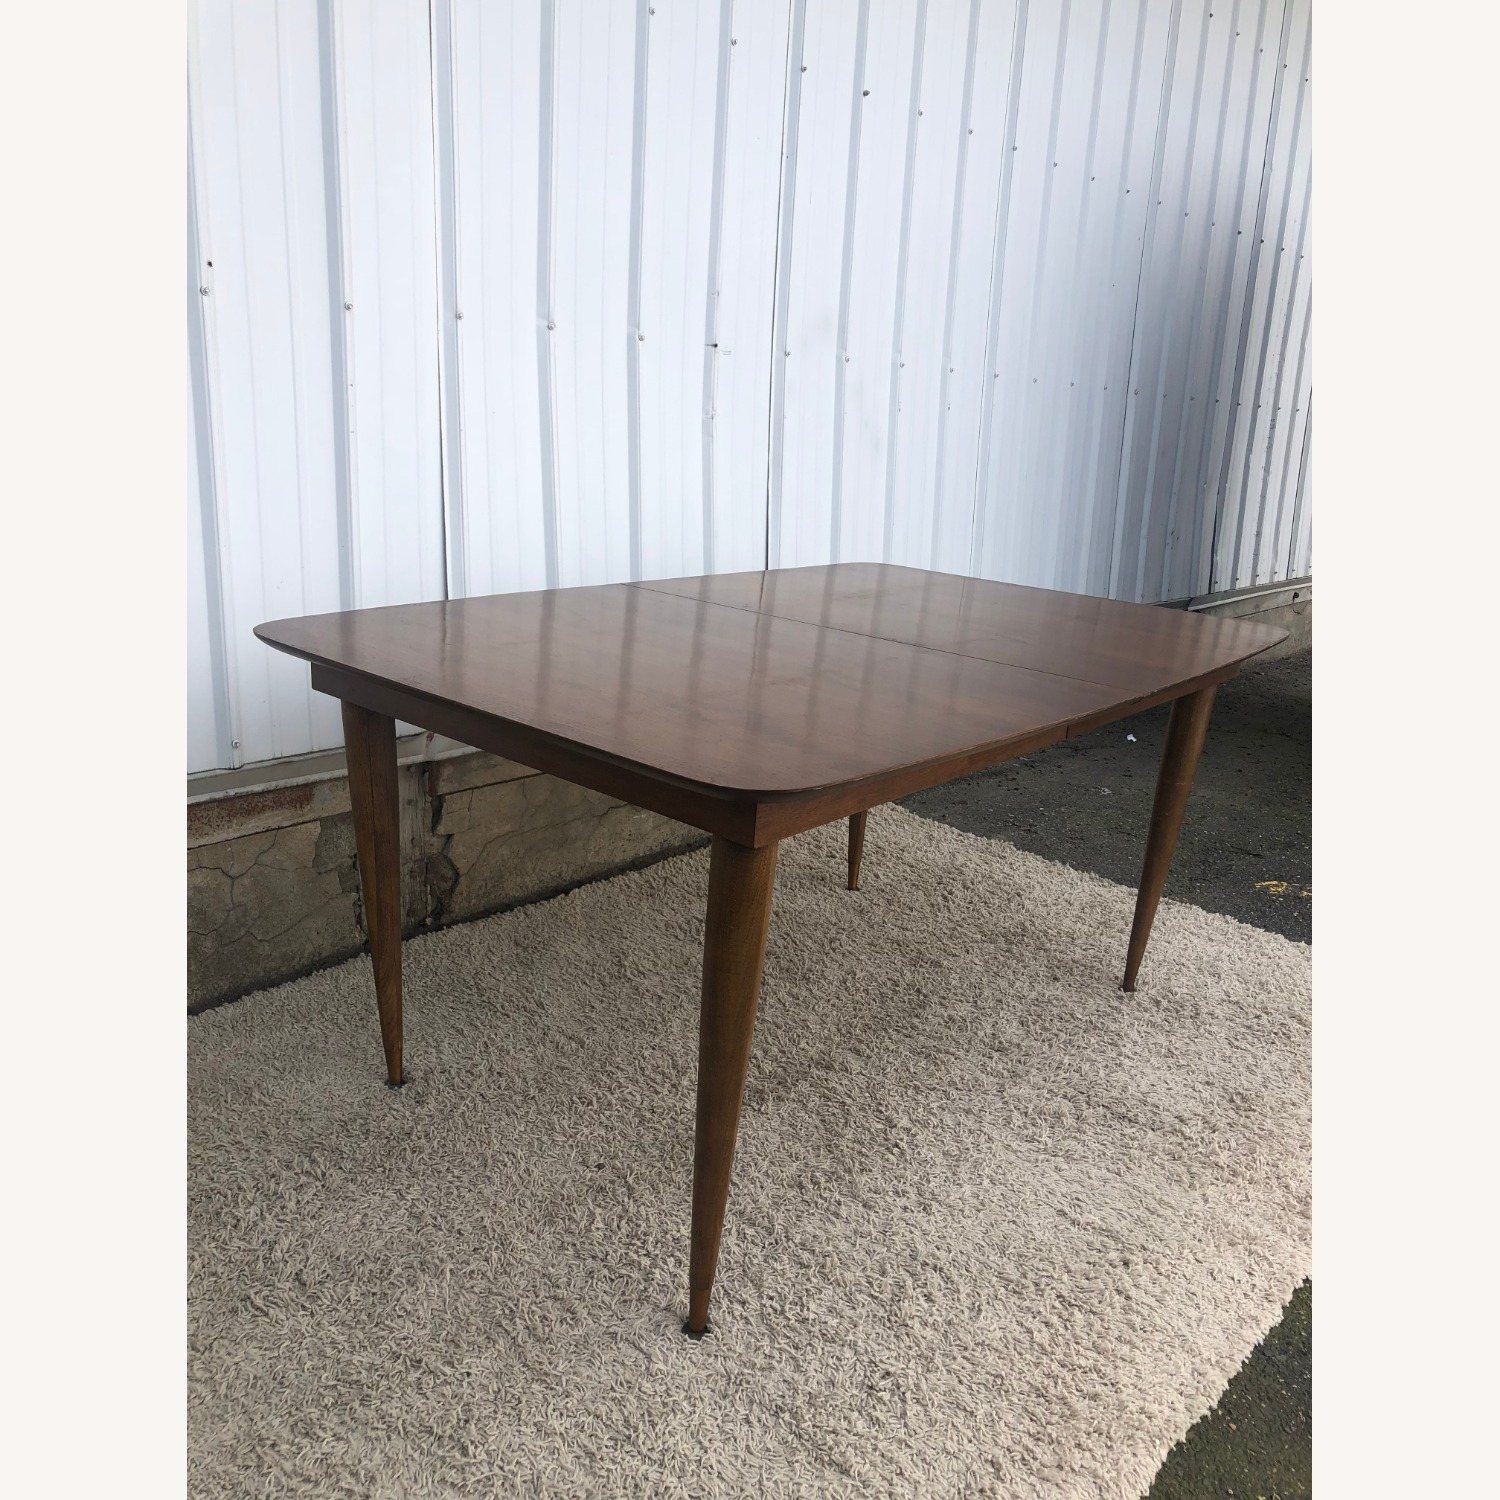 Mid Century Walnut Dining Table with One Leaf - image-3